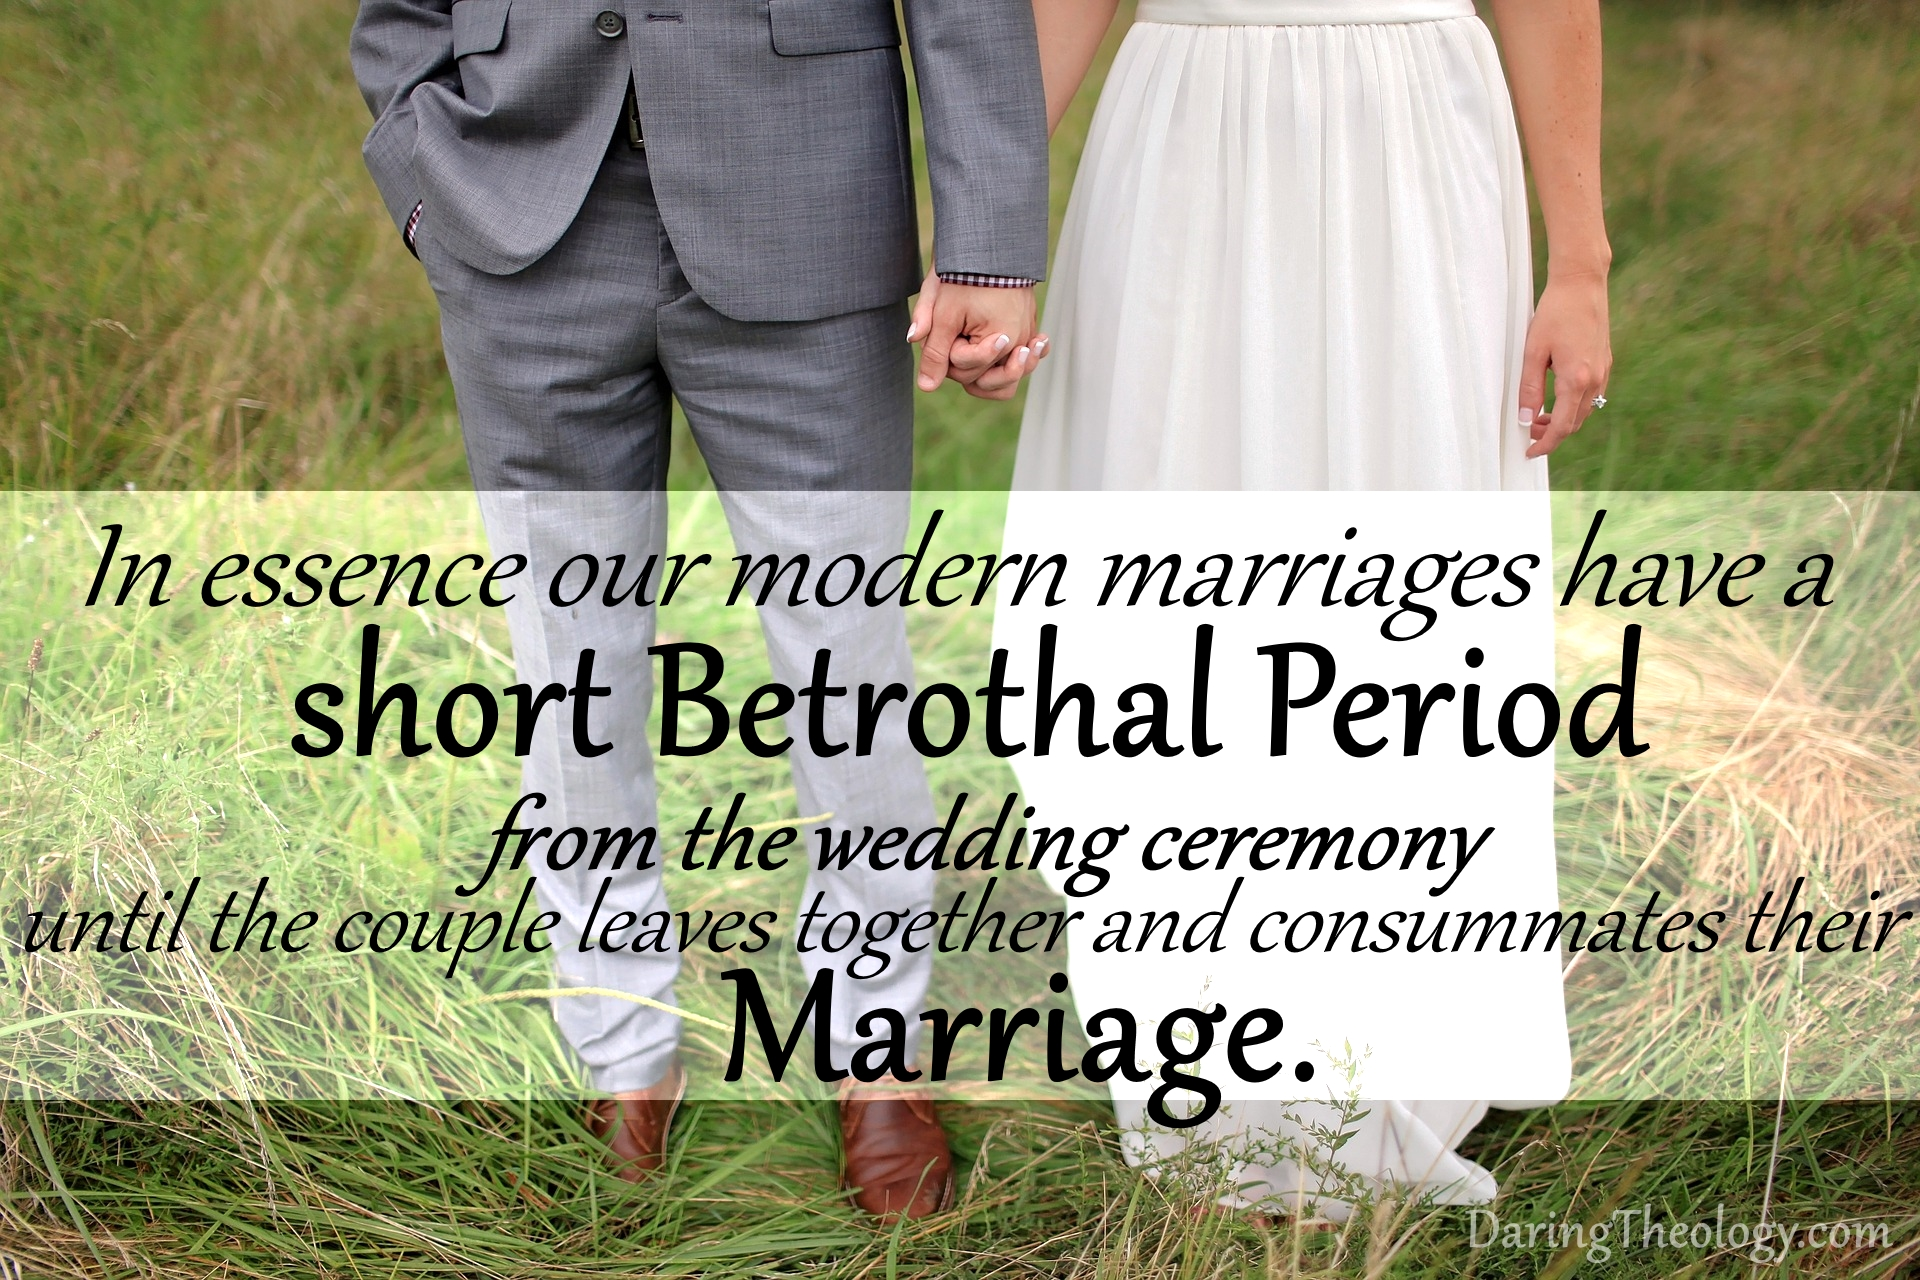 Modern marriages have a short betrothal period from the wedding ceremony until the couple leaves